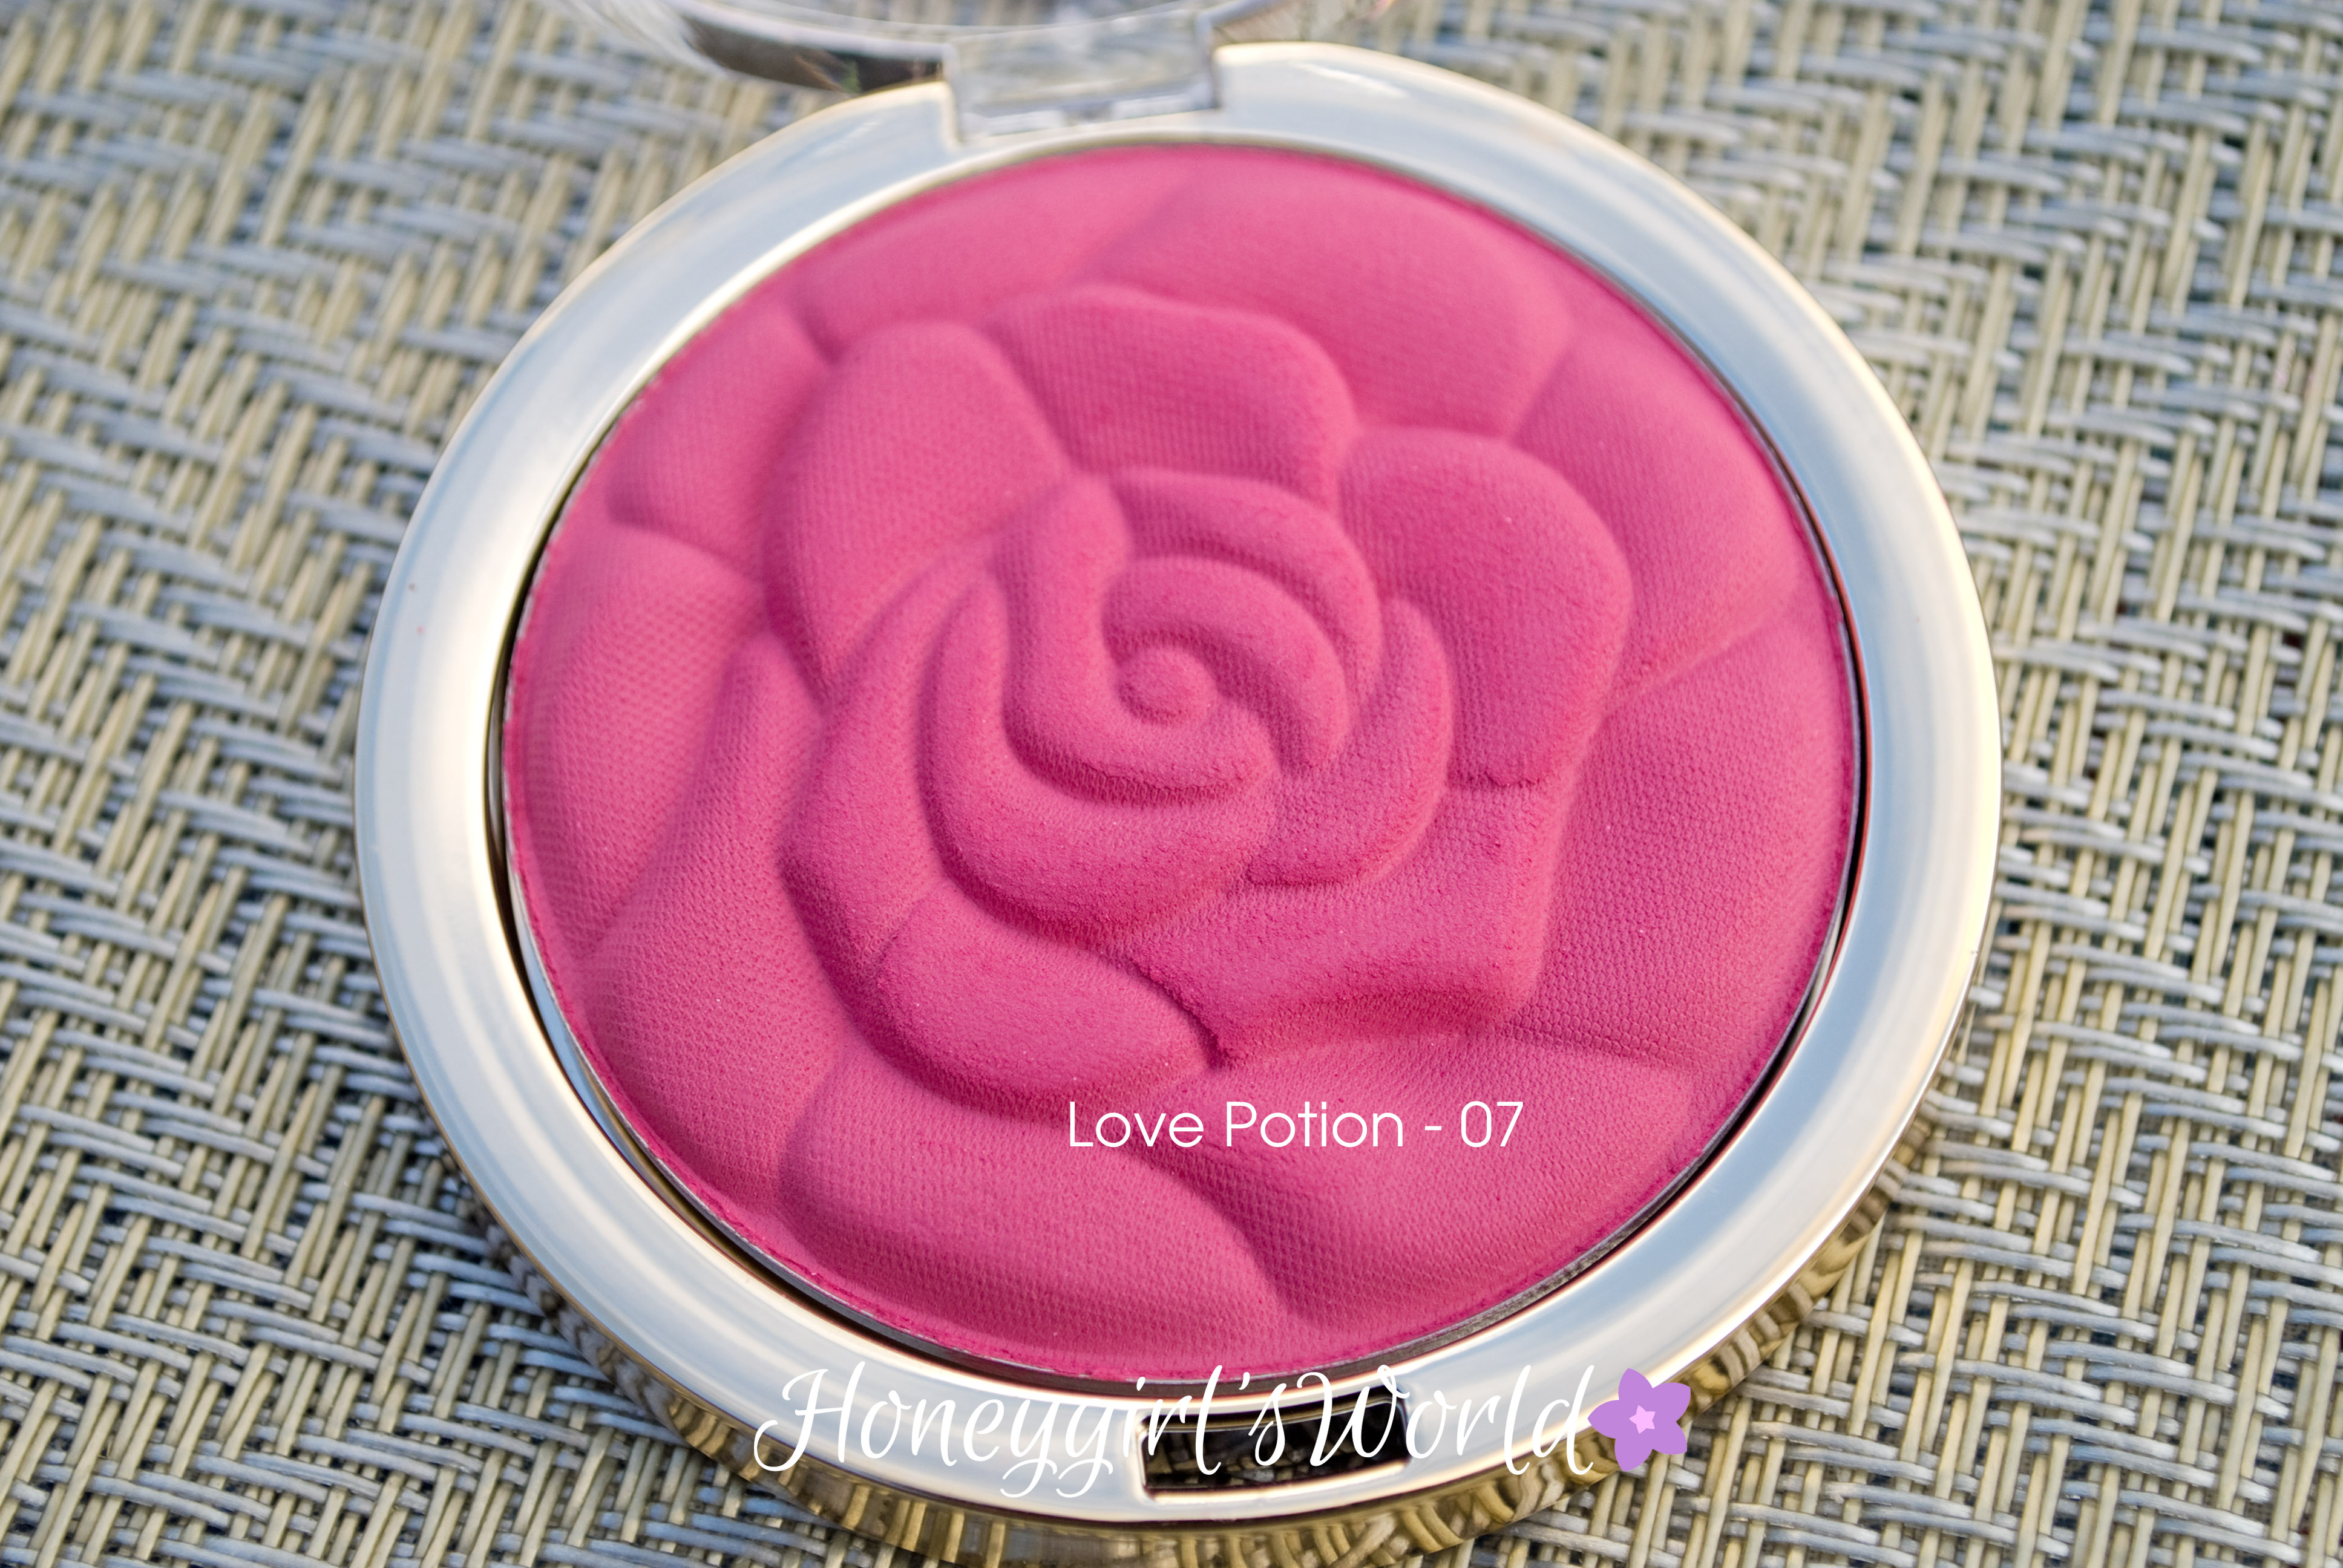 07 Love Potion - Milani Rose Powder Blush